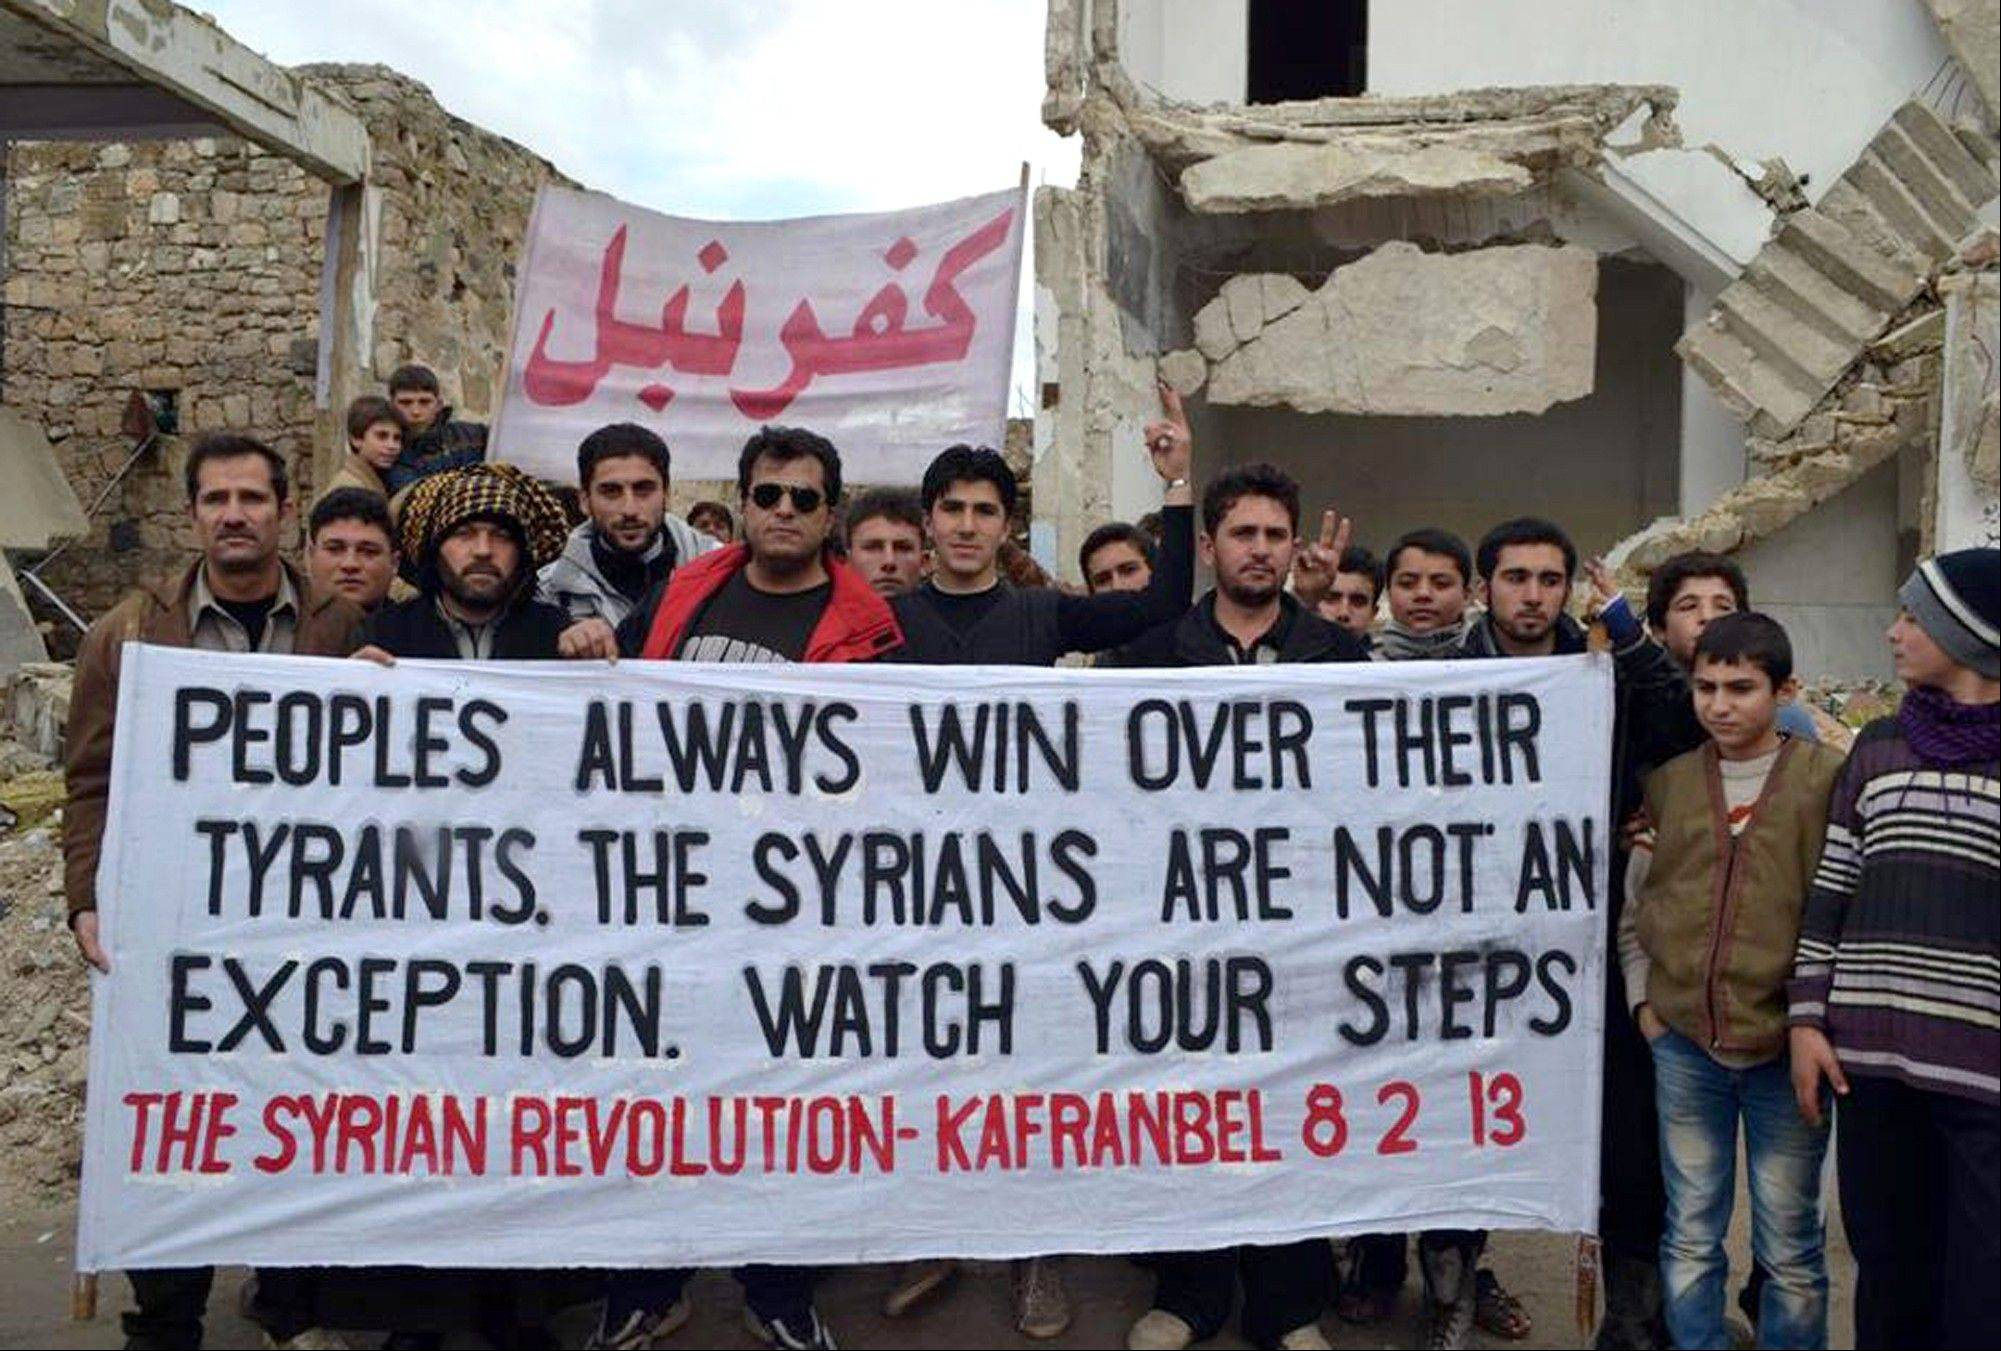 Associated Press/Image provided by Edlib News Network, ENN Anti-Syrian regime protesters hold a banner Friday during a demonstration, at Kafr Nabil town, in Idlib province, northern Syria.